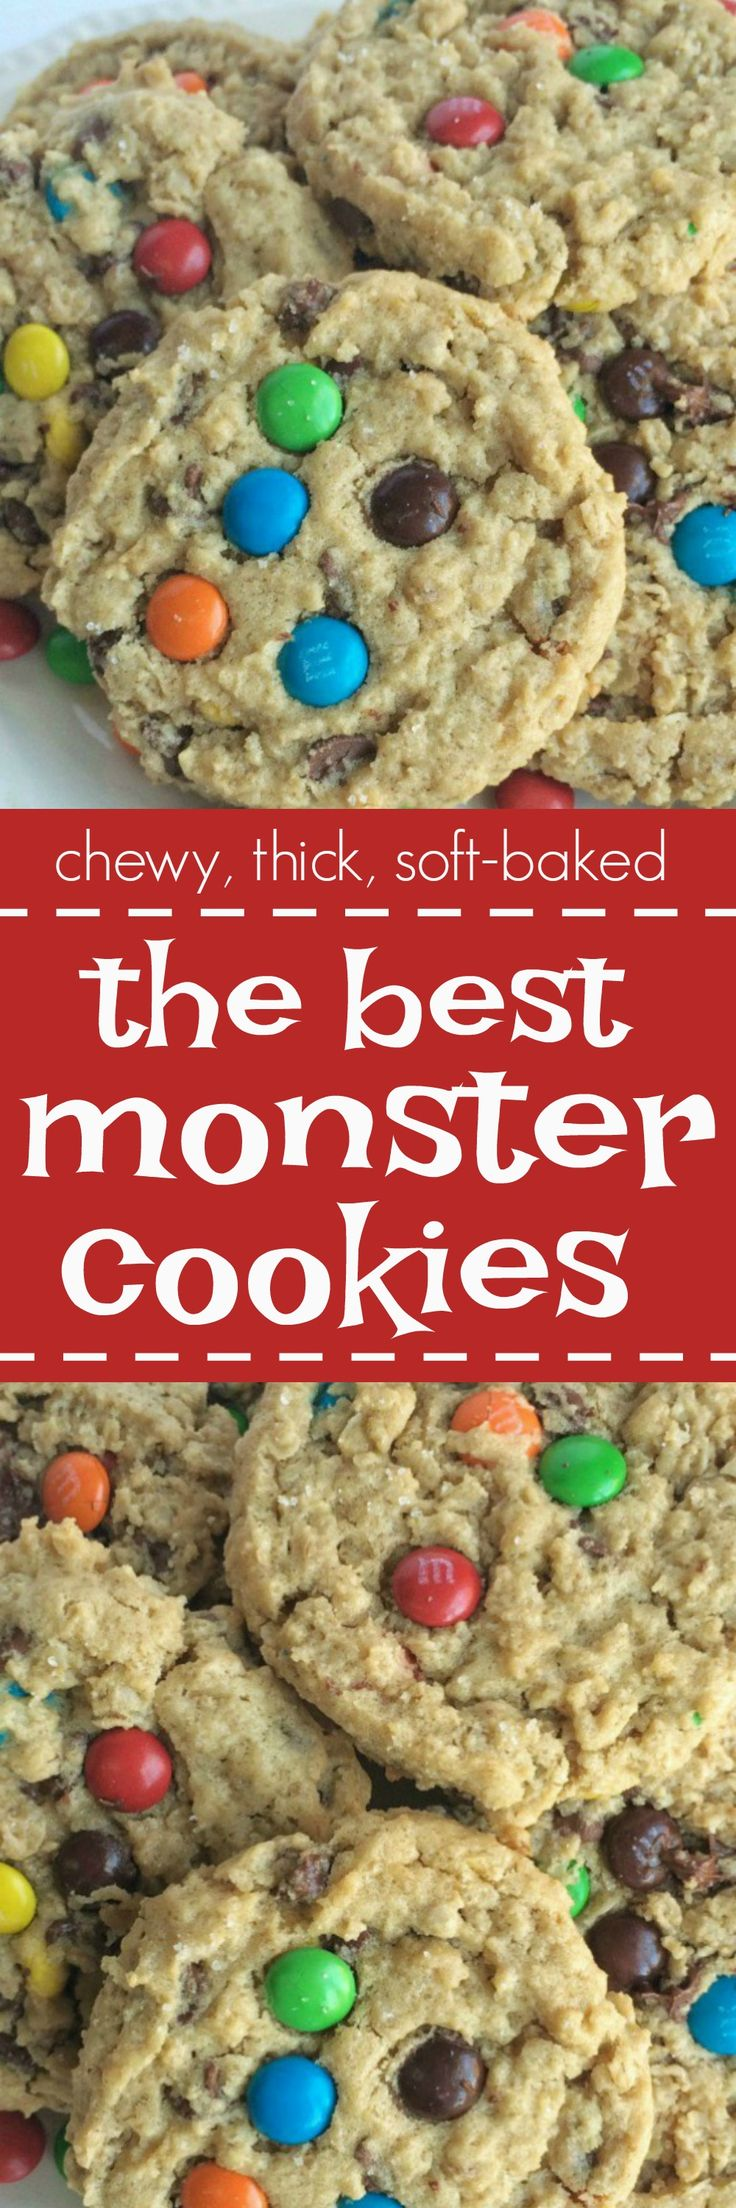 The best monster cookies are loaded with peanut butter, oats, chocolate chips, and m&m's! They are thick, chewy, and a soft-baked cookie, with a surprise ingredient, that are addictive and delicious.